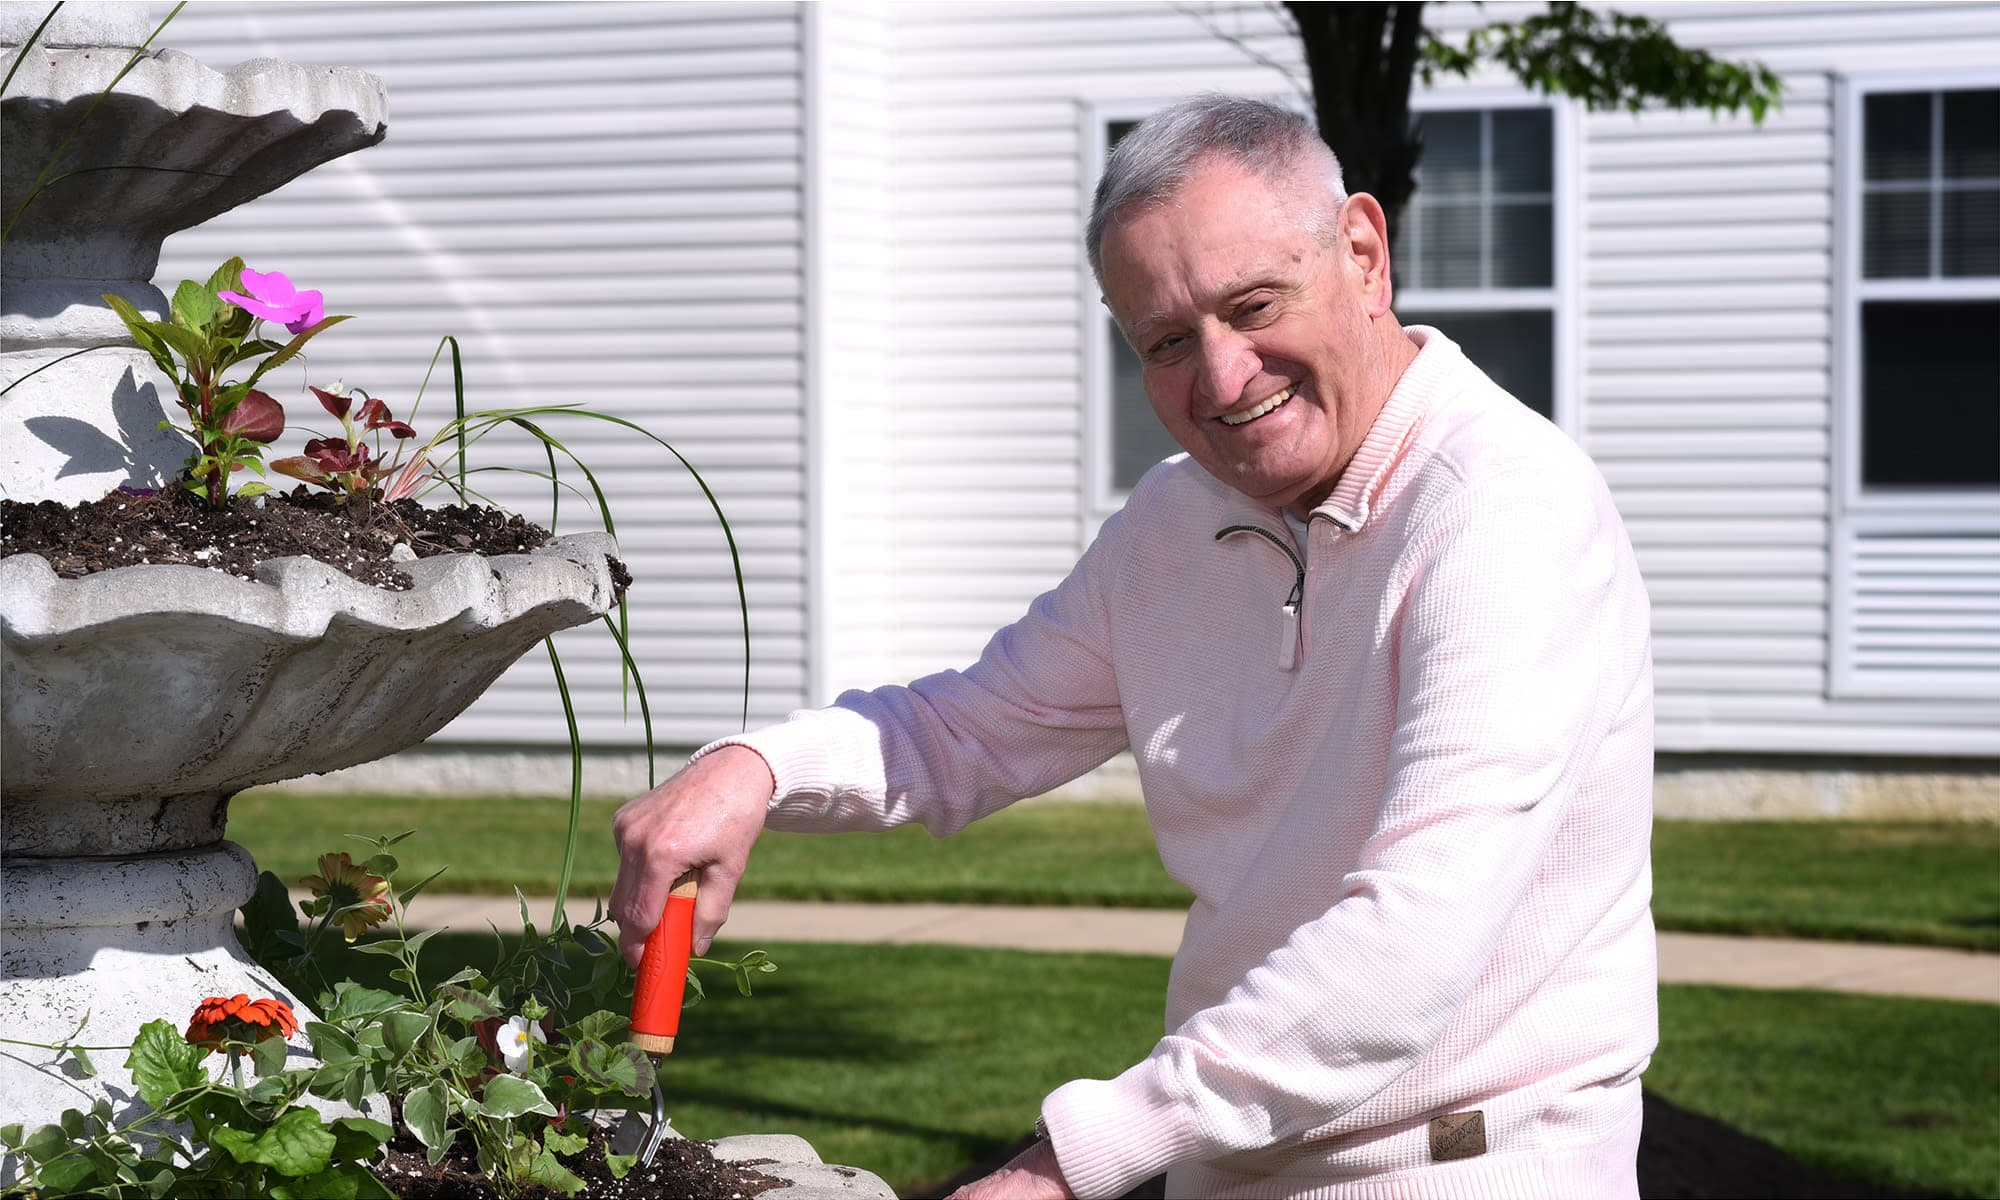 Resident gardening at Mattison Crossing at Manalapan Avenue in Freehold, New Jersey.